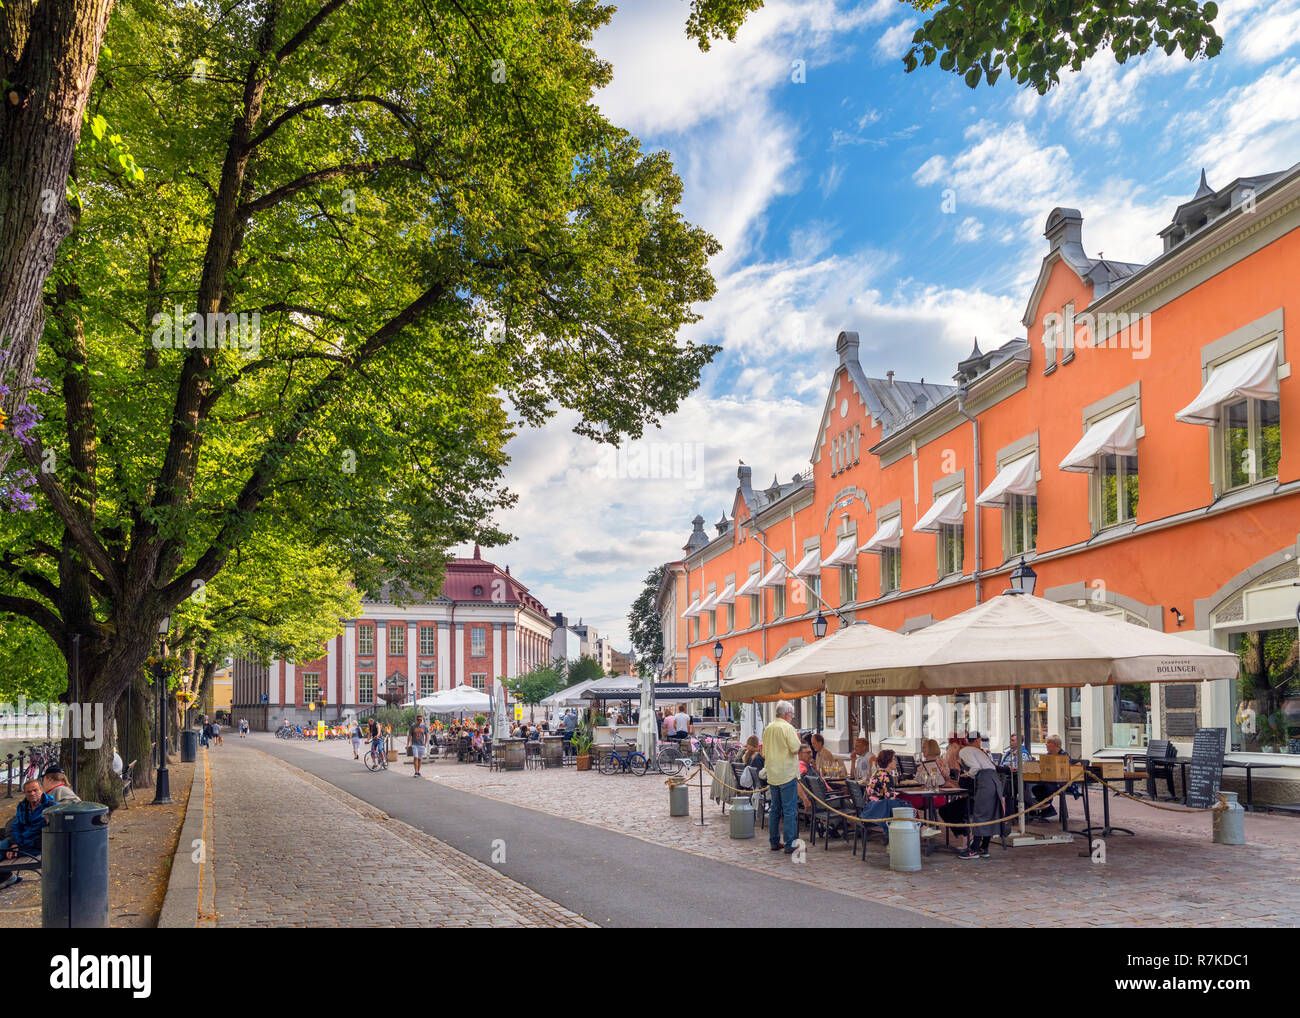 Cafe / bar on the banks of the River Aura (Aurajoki) in the historic centre, Turku, Finland - Stock Image